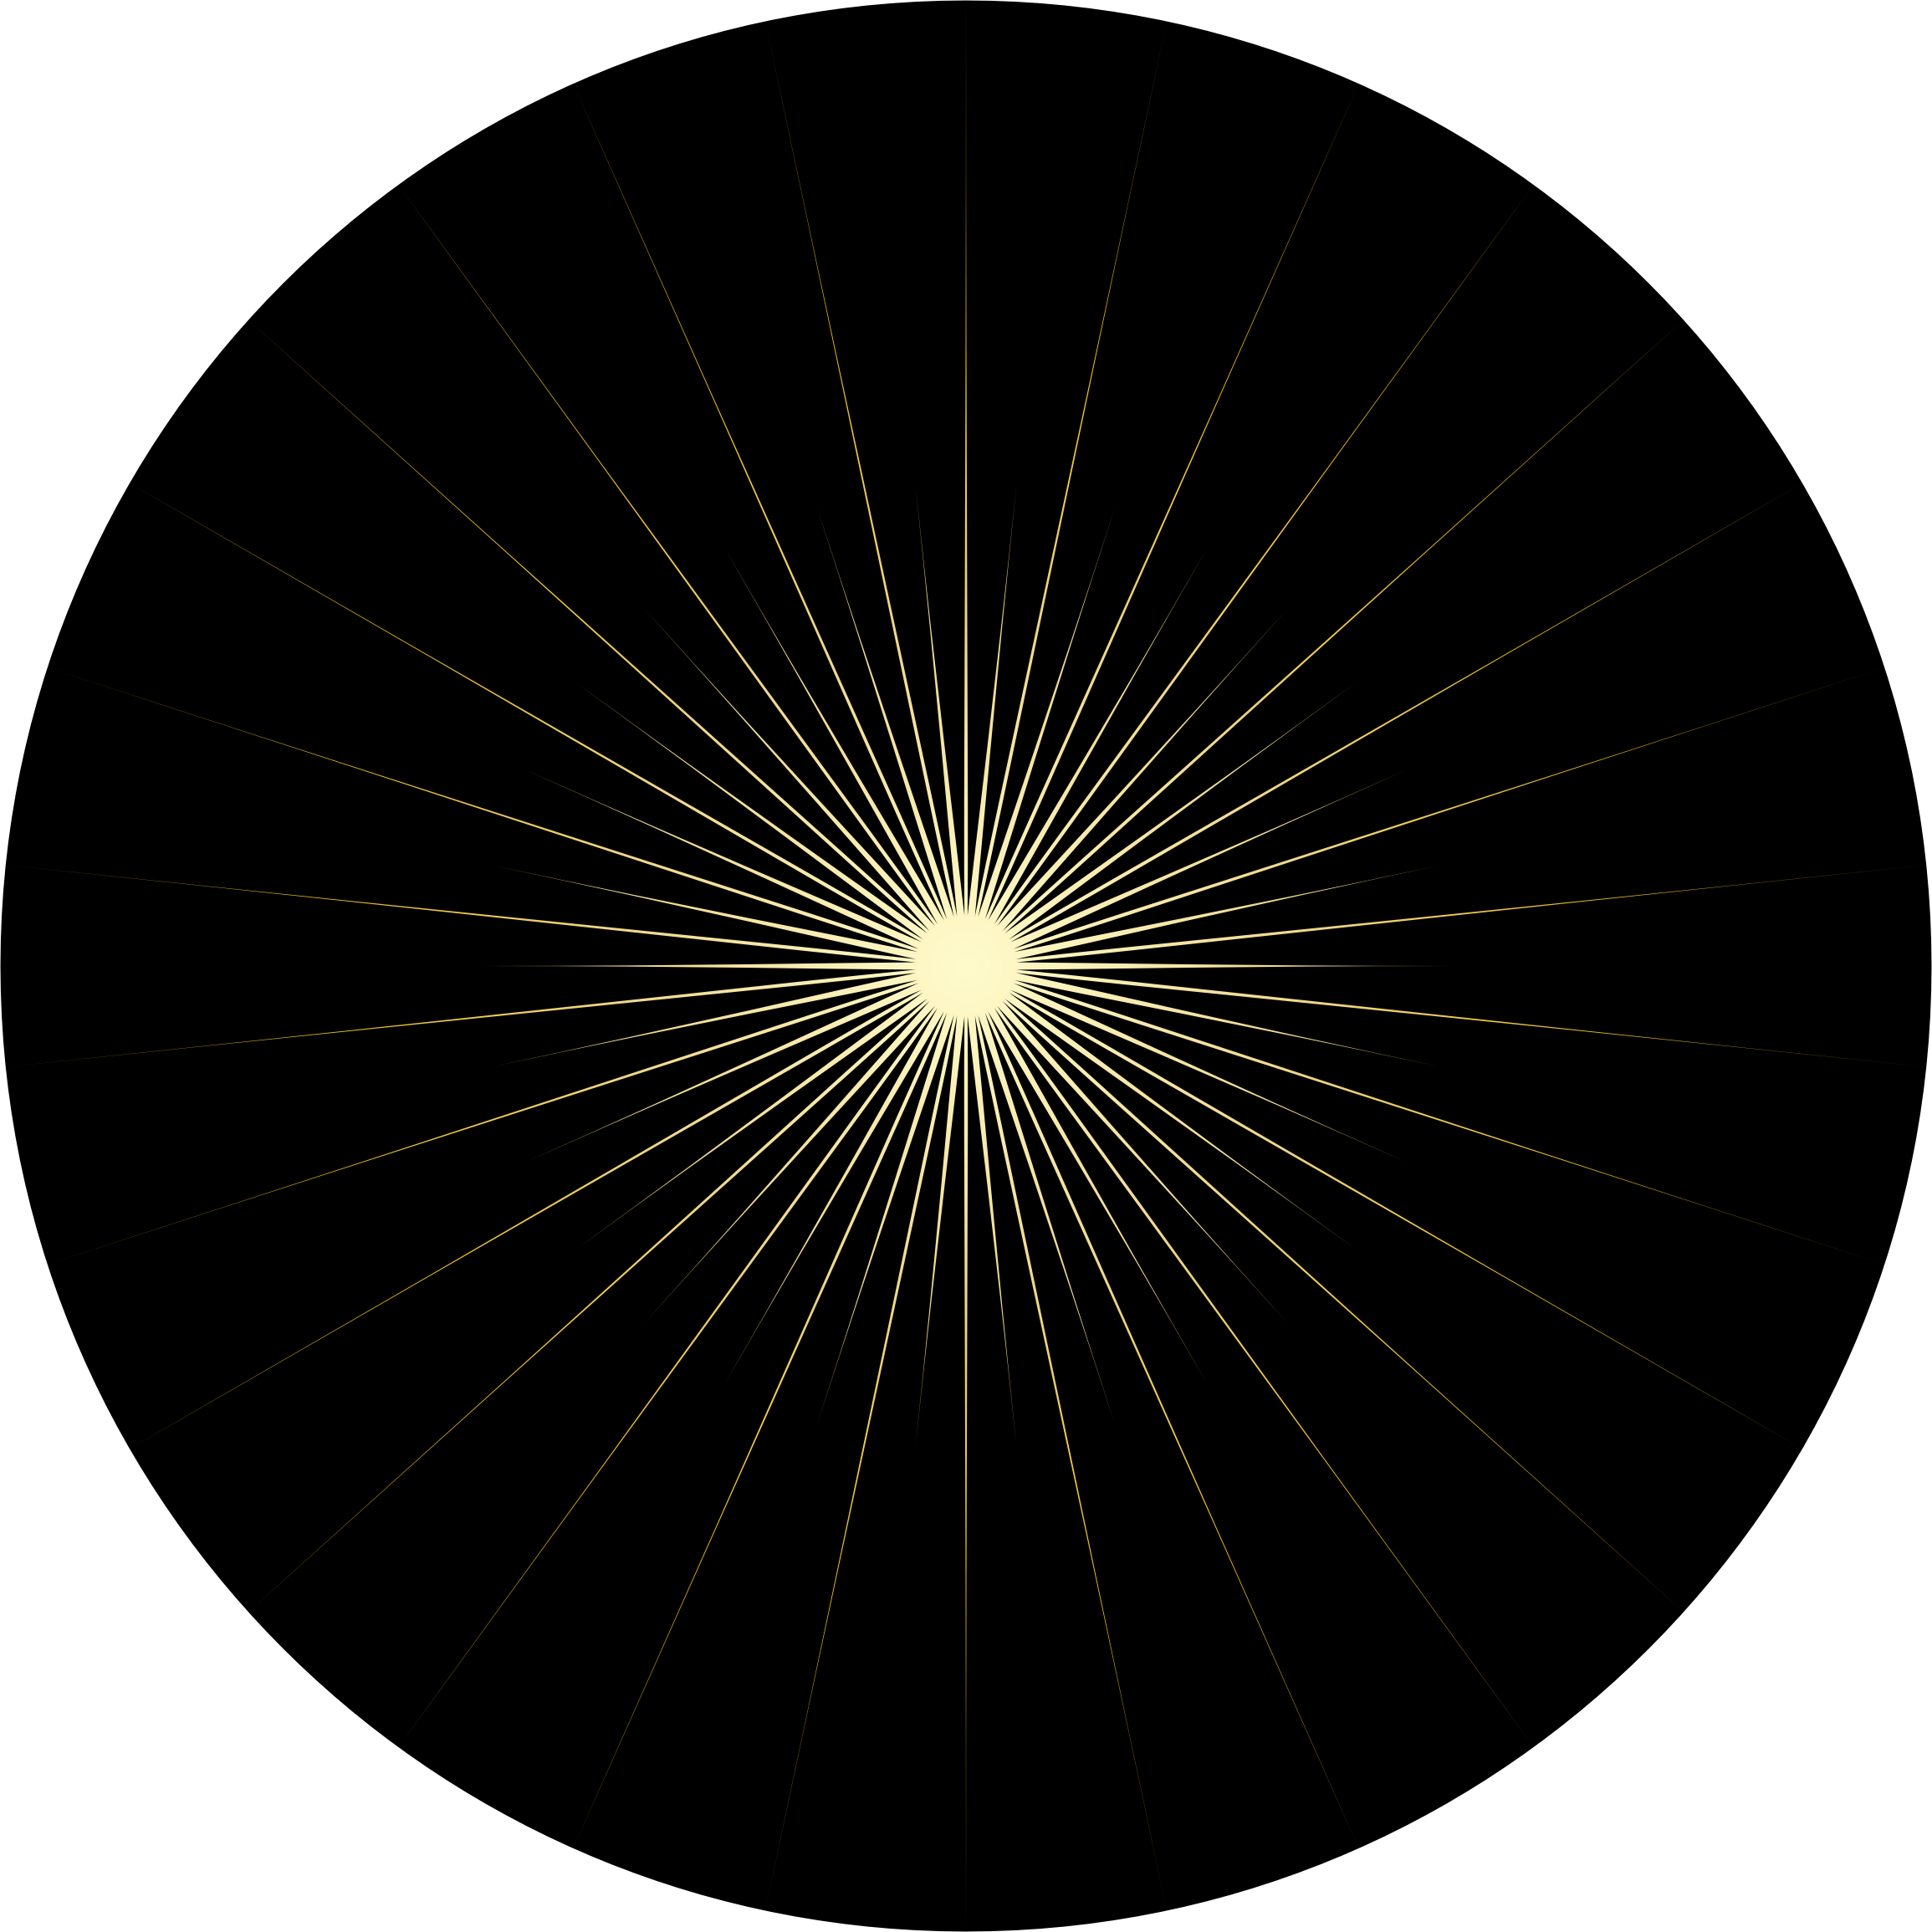 clipart bright shining sun the sun is hot clipart images of the sun clipart